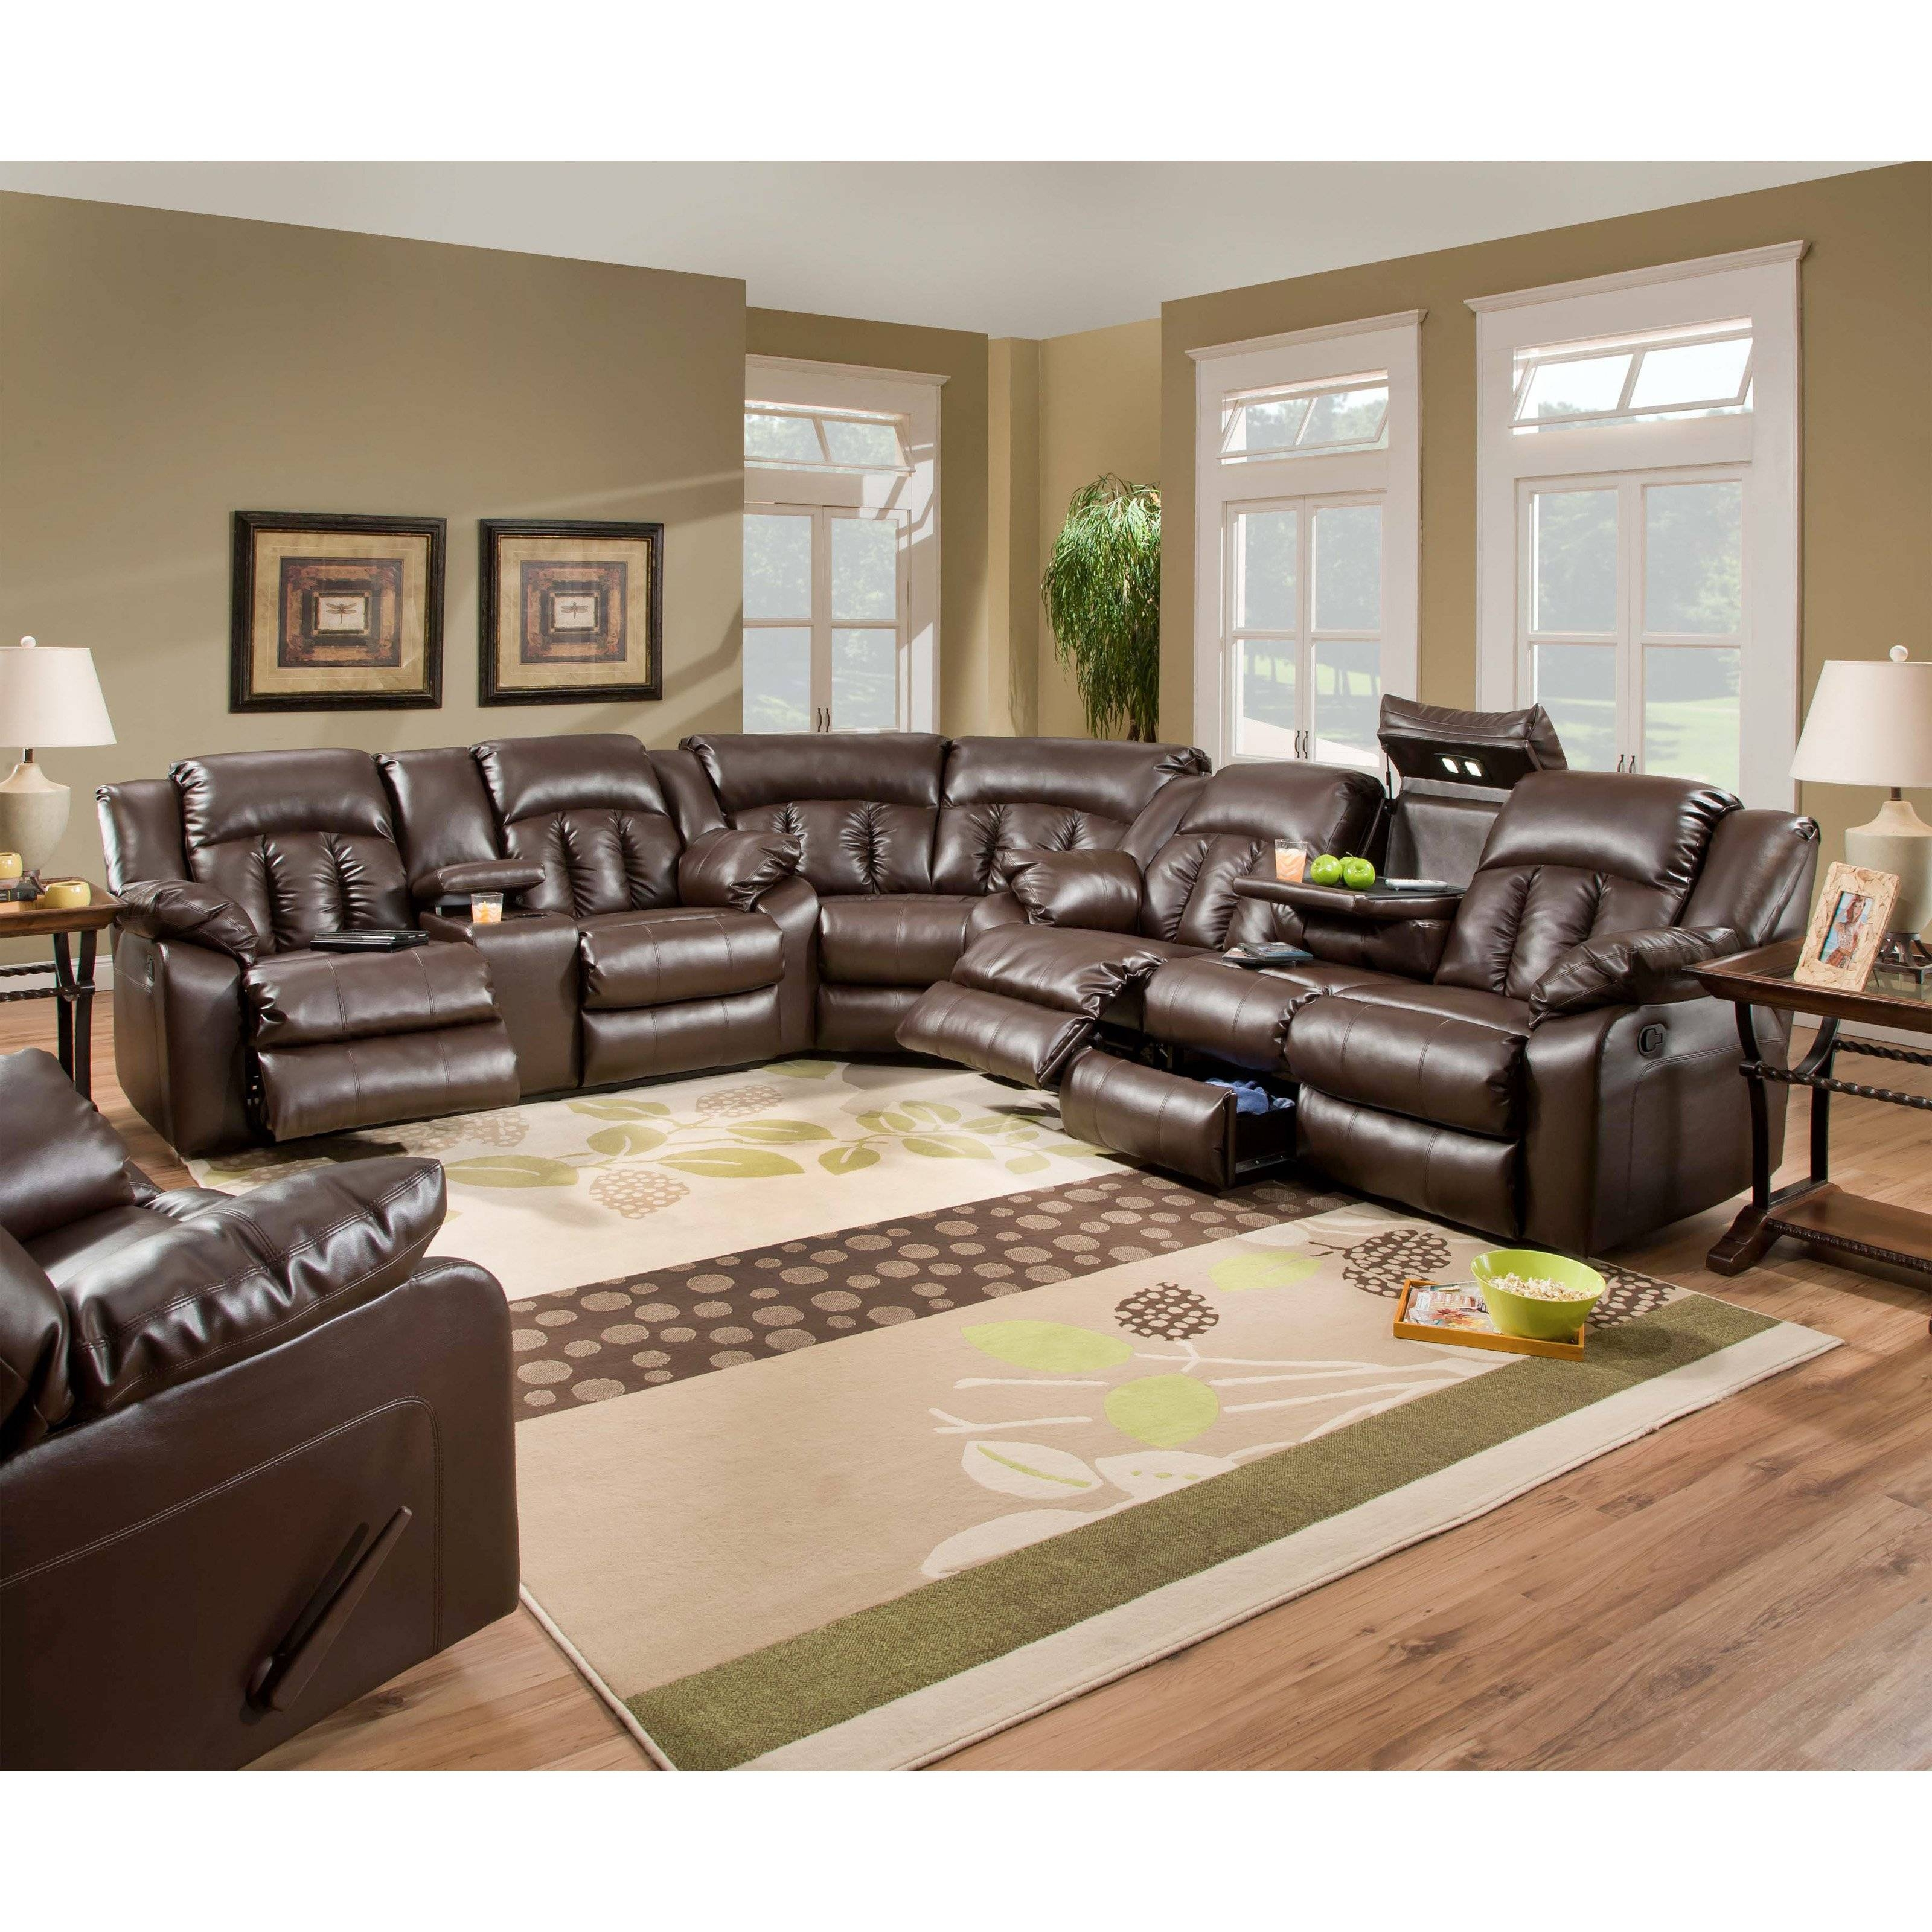 Simmons Upholstery Sebring Bonded Leather Sectional | Hayneedle with regard to Simmons Sectional Sofas (Image 23 of 30)